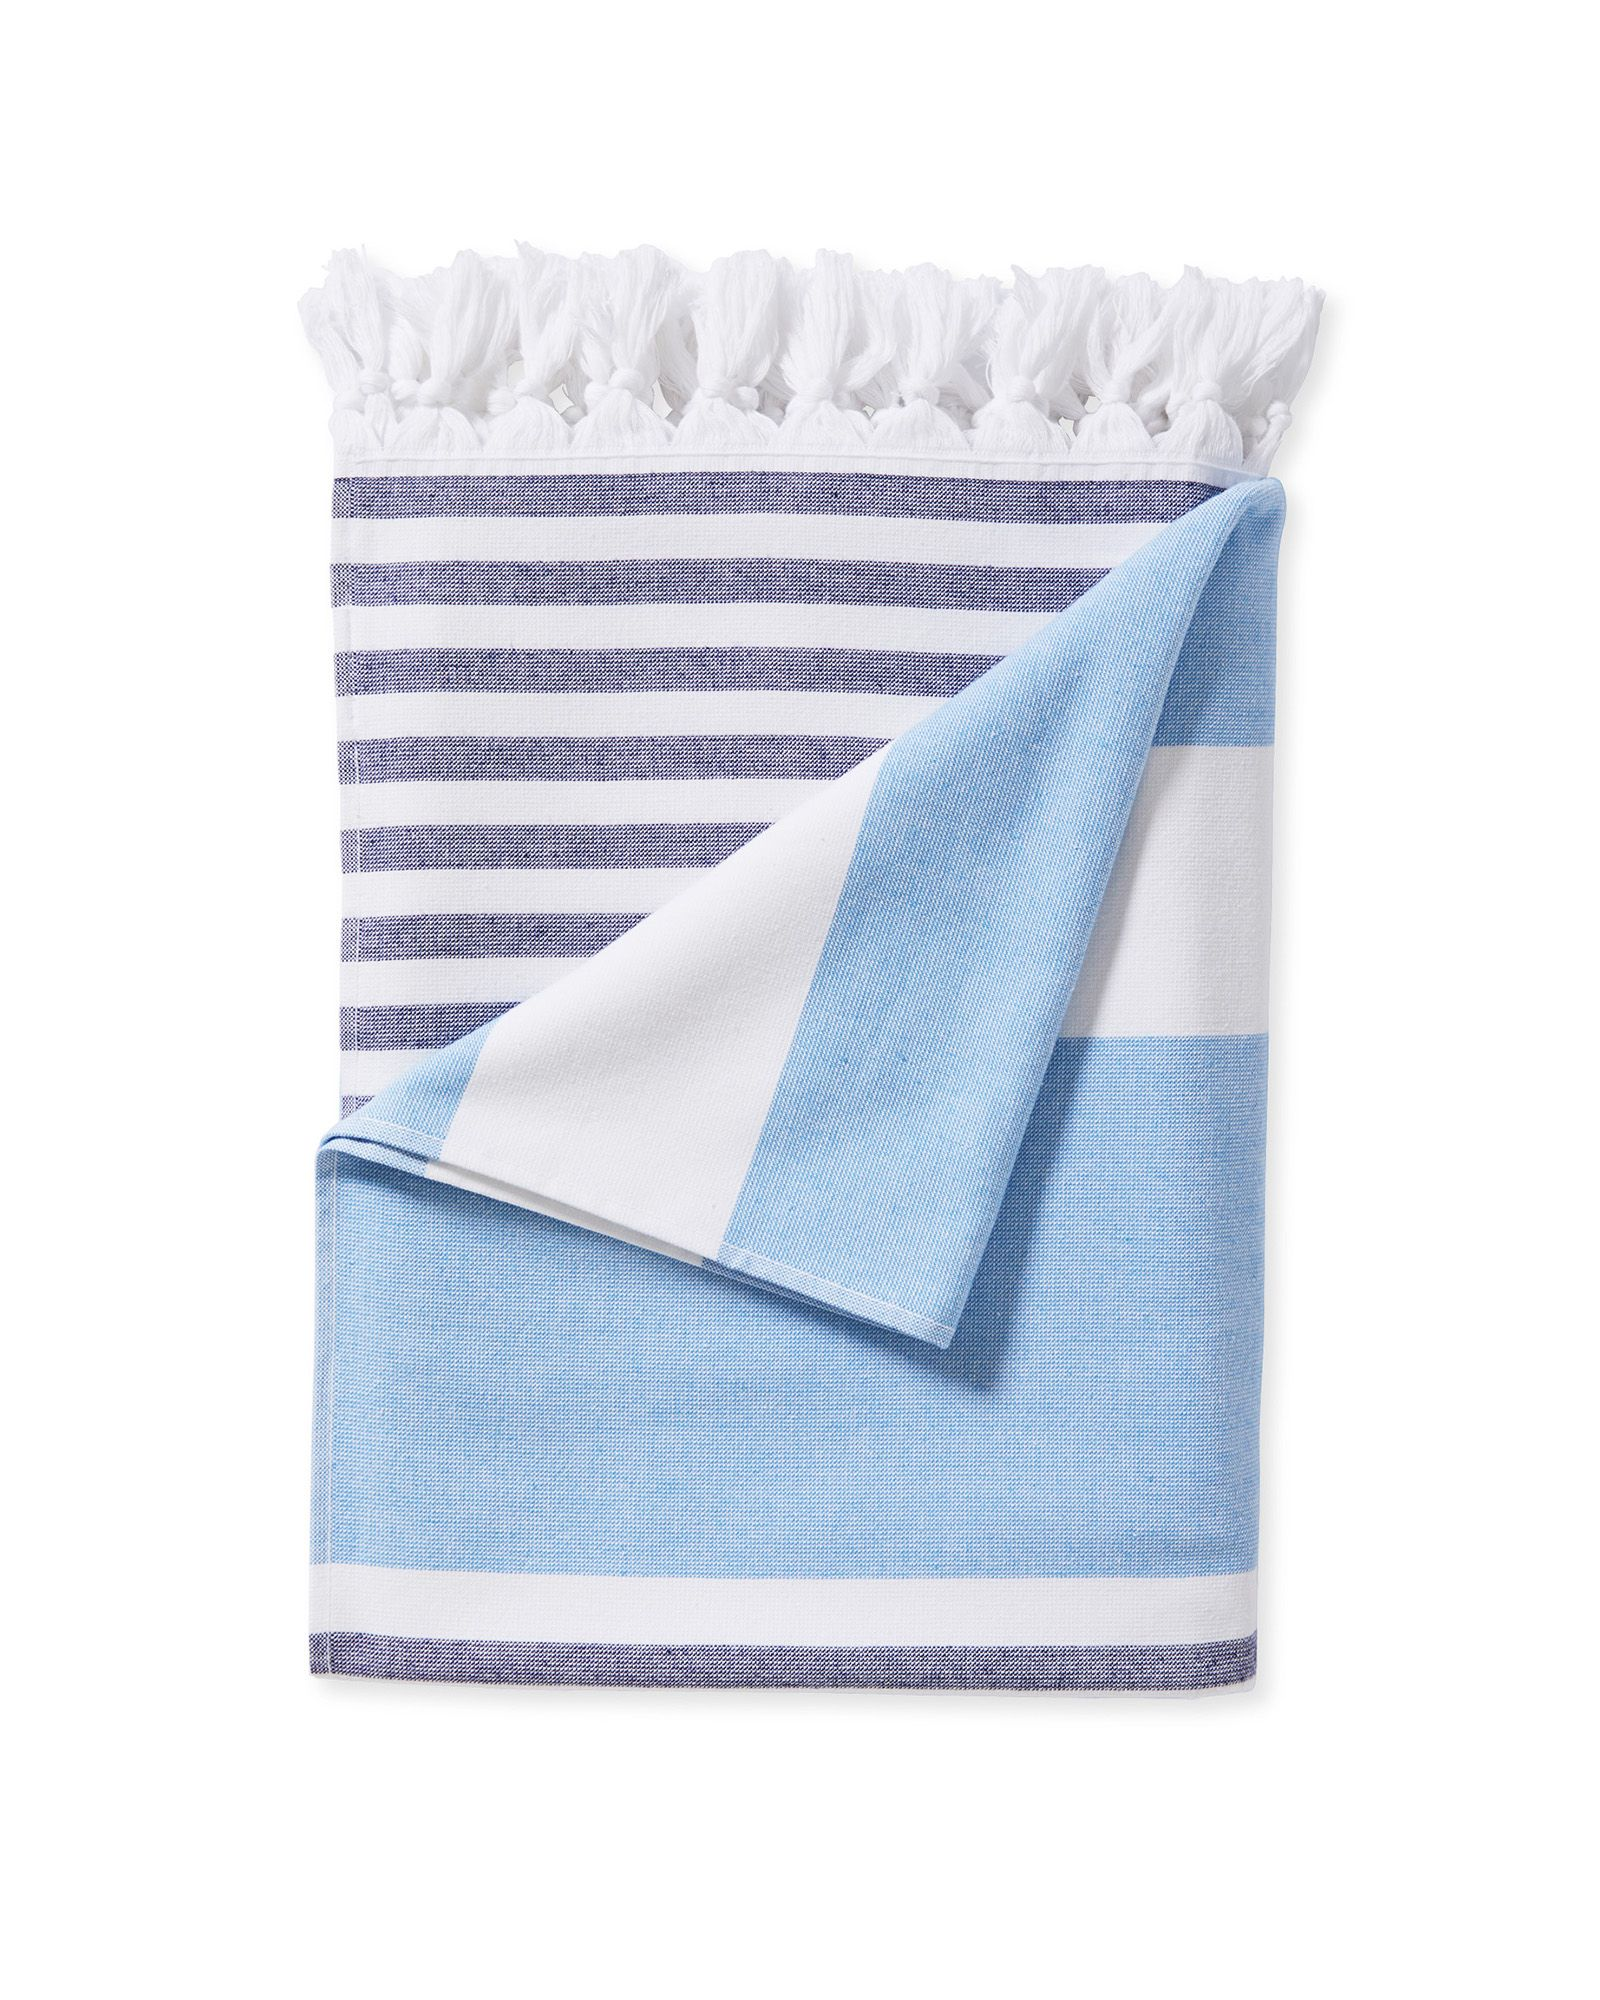 Capri Fouta Beach Towel Beach Towel Beach Towel Set Towel